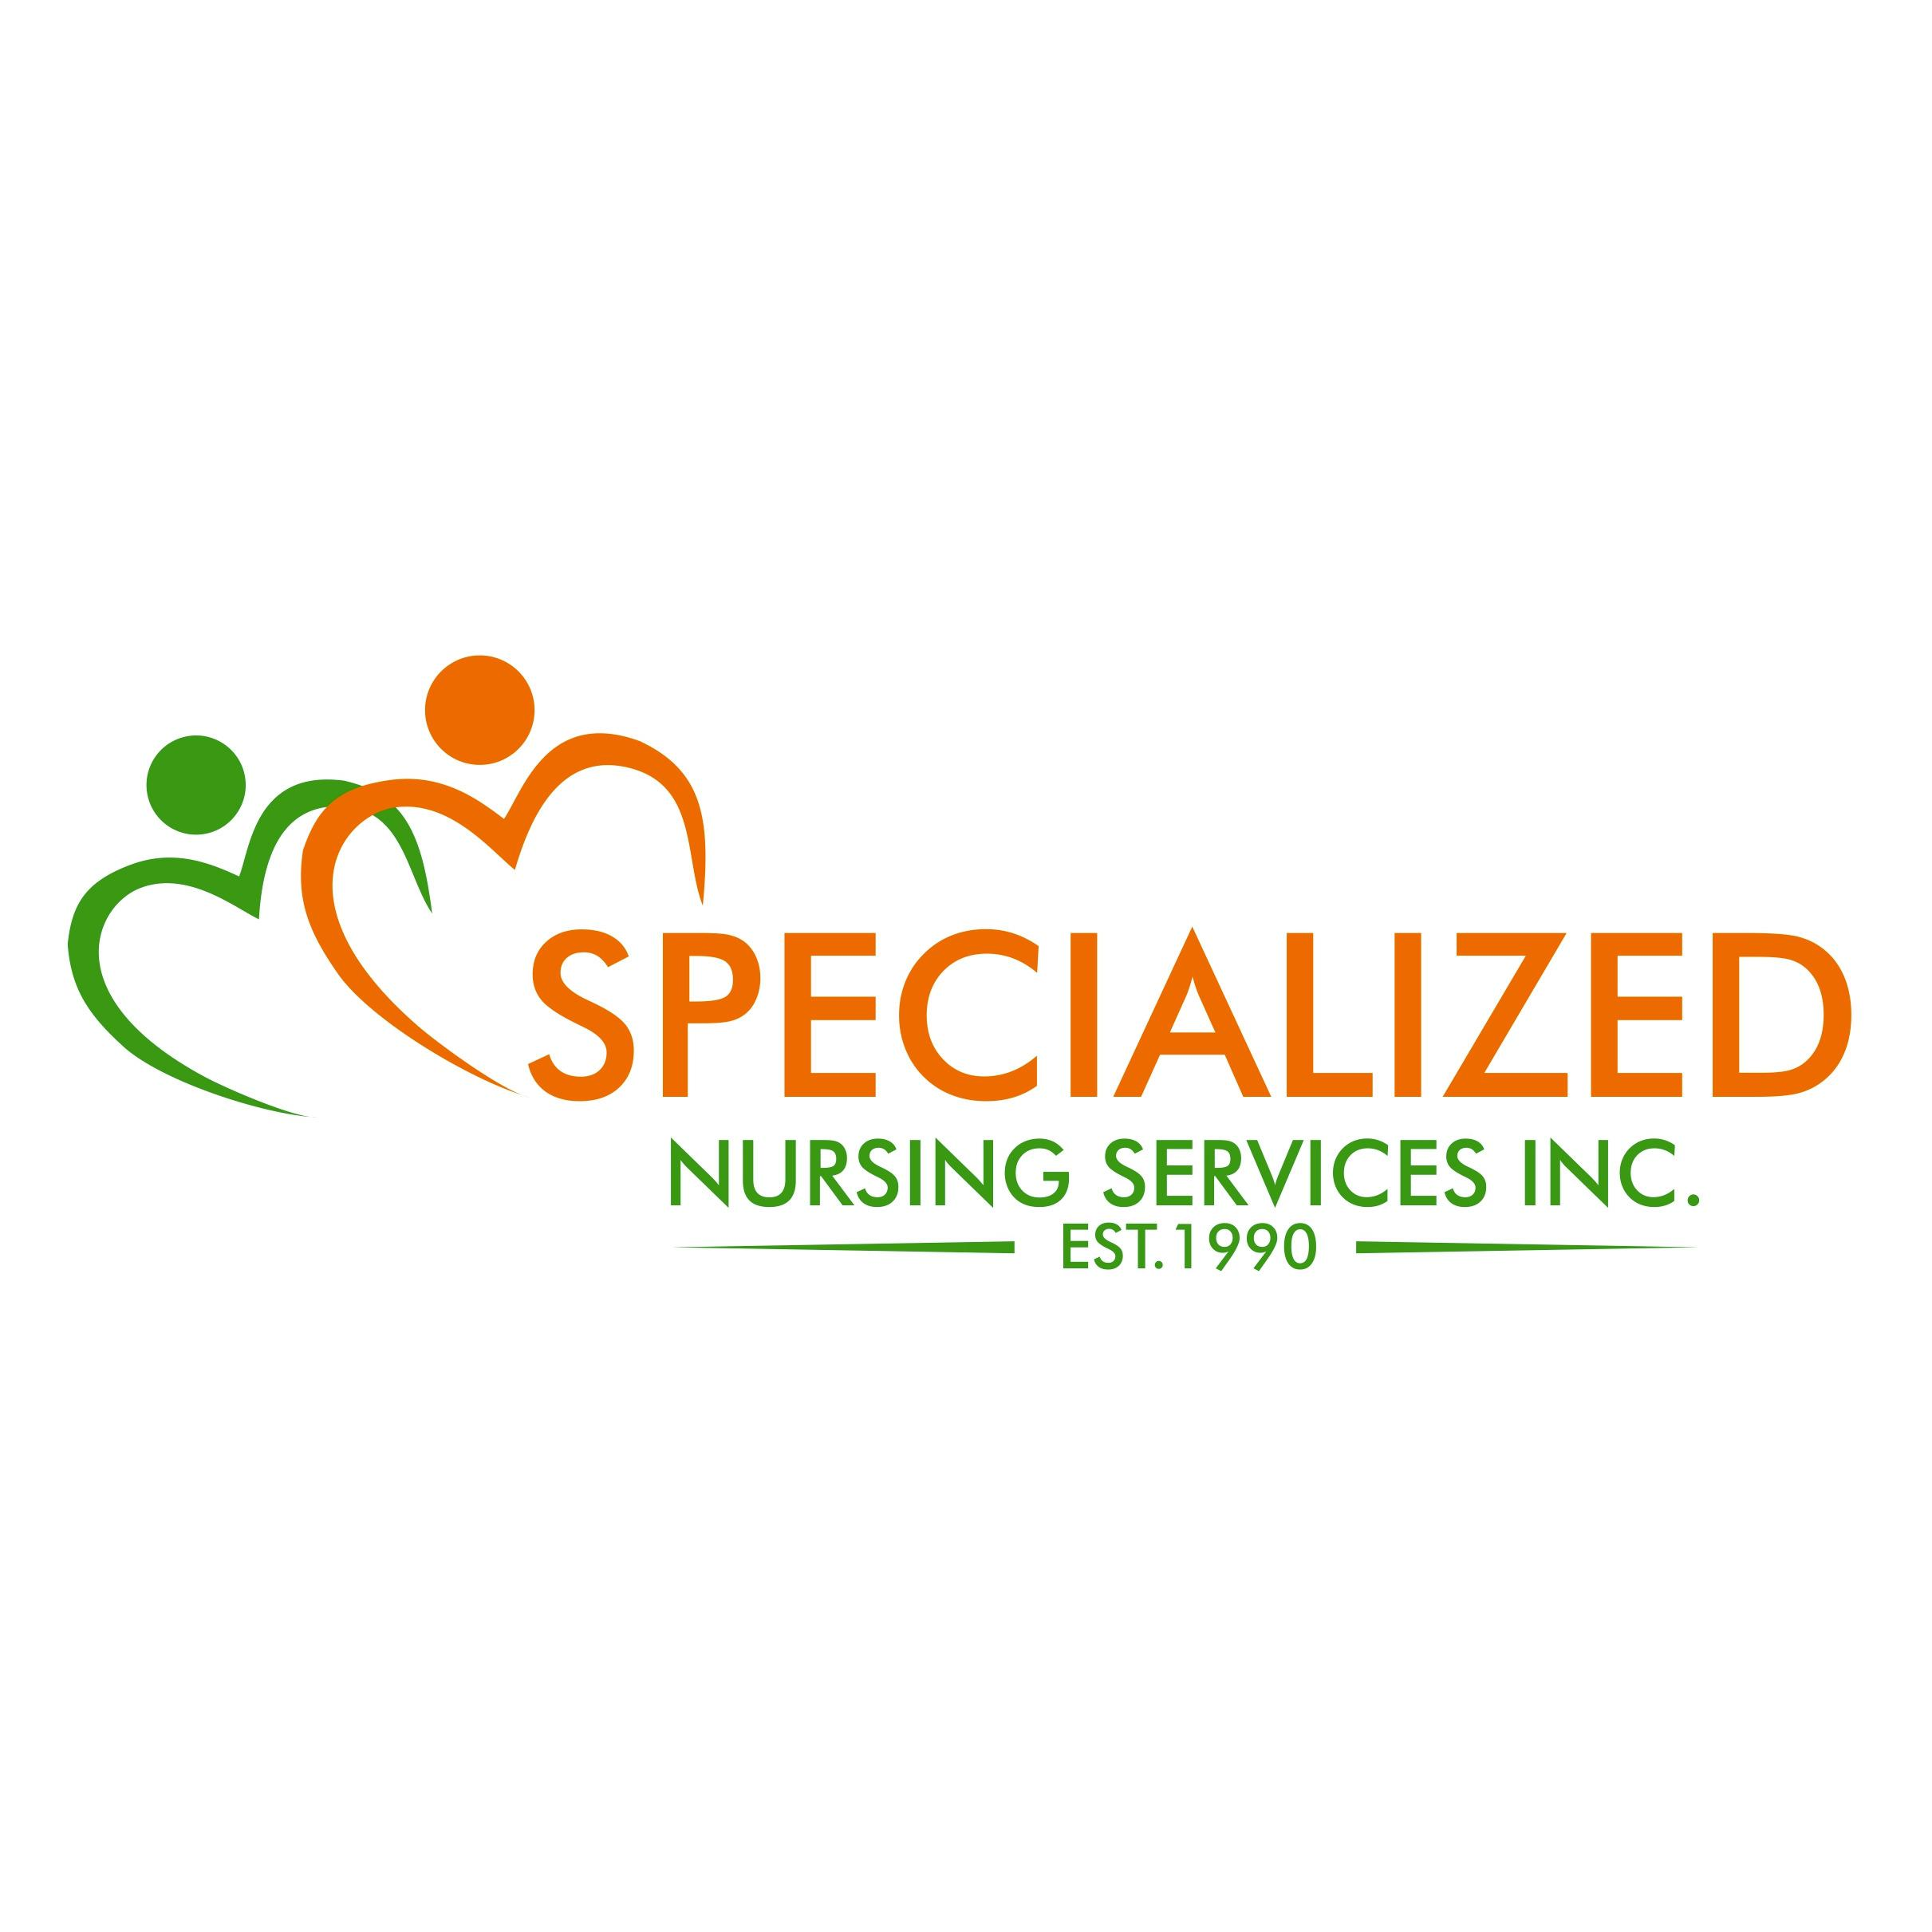 Specialized Nursing Services Inc.